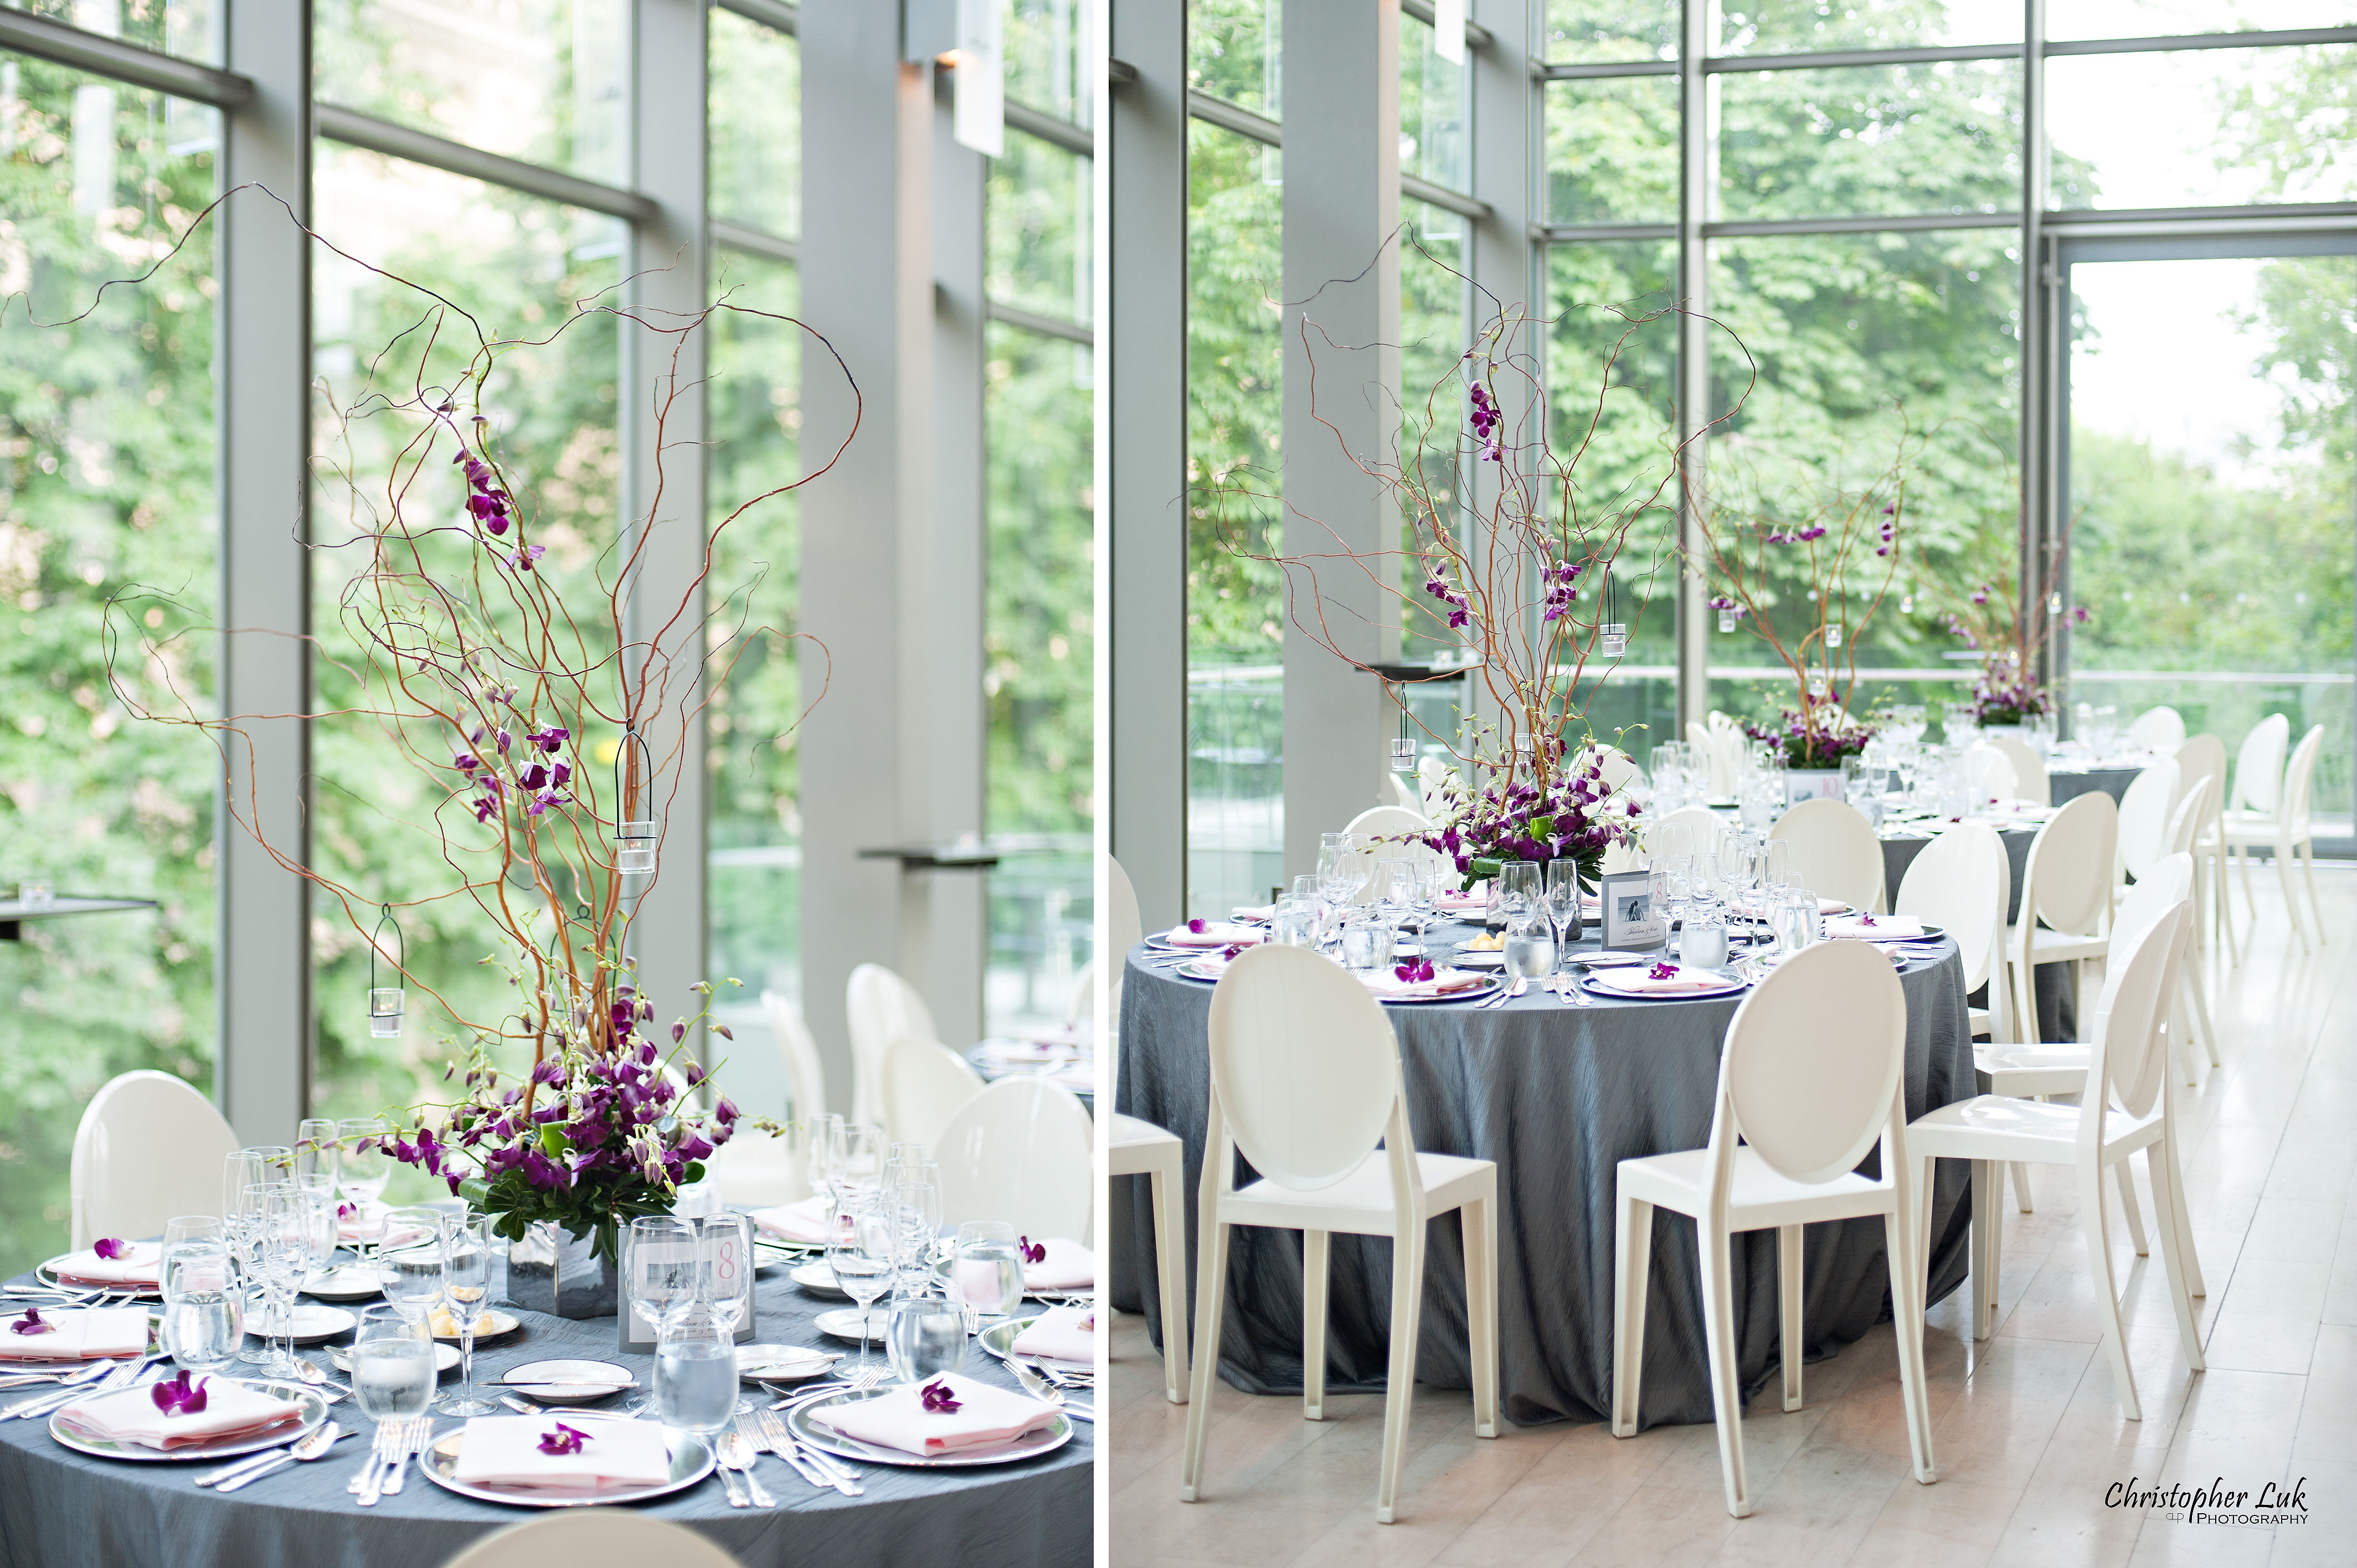 The Royal Conservatory of Music – Toronto Wedding, Event, and Performance Venue – Photographer Review